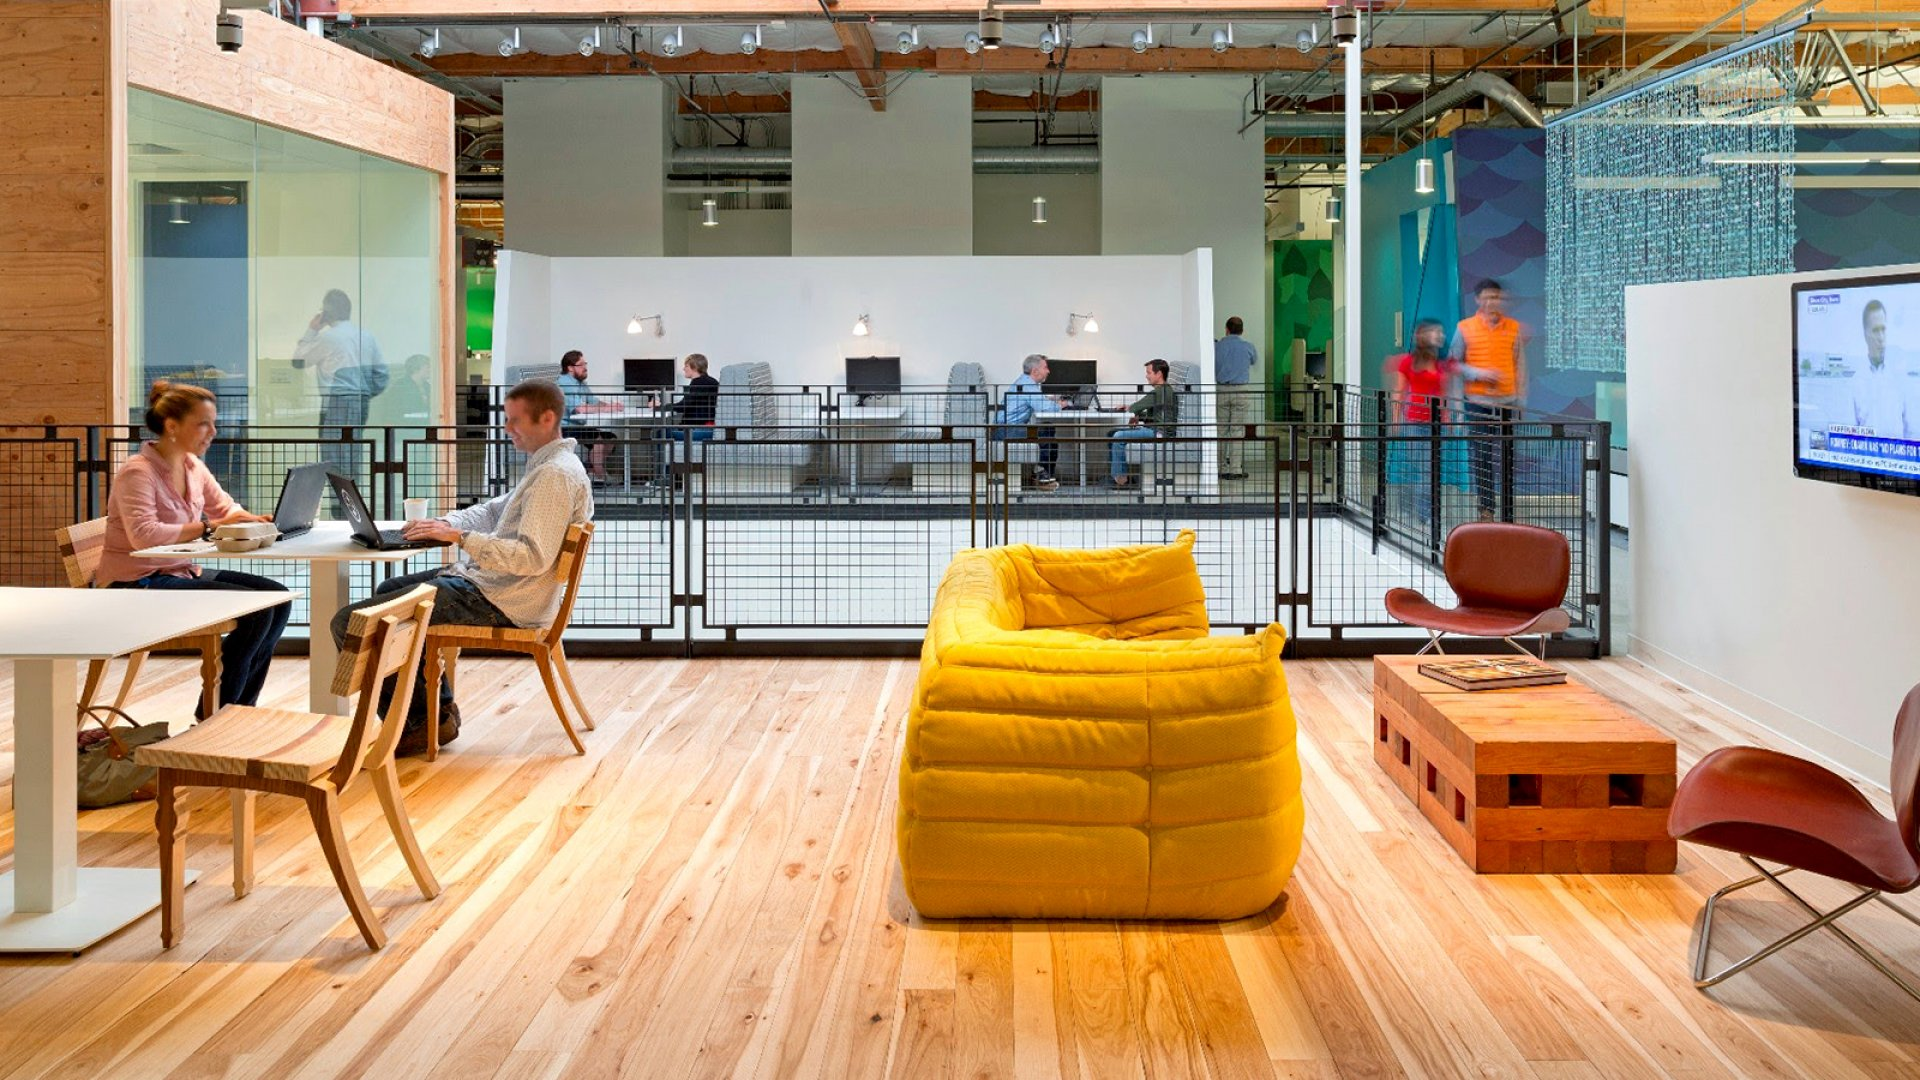 Common areas in the Google Mountain View Campus.